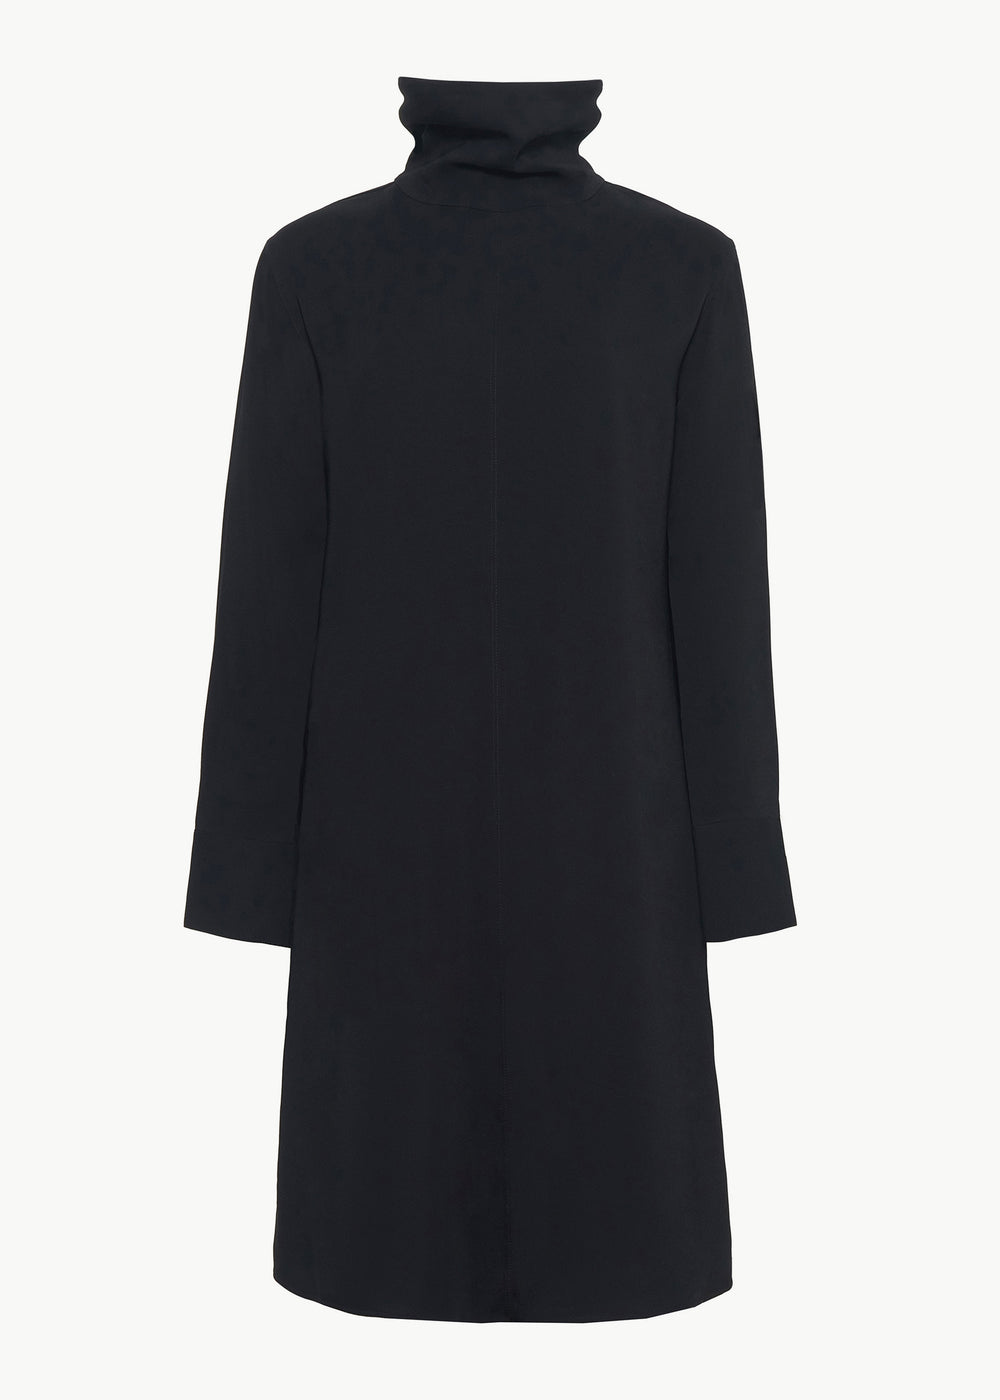 Long Sleeve Dress in Stretch Crepe - Black - CO